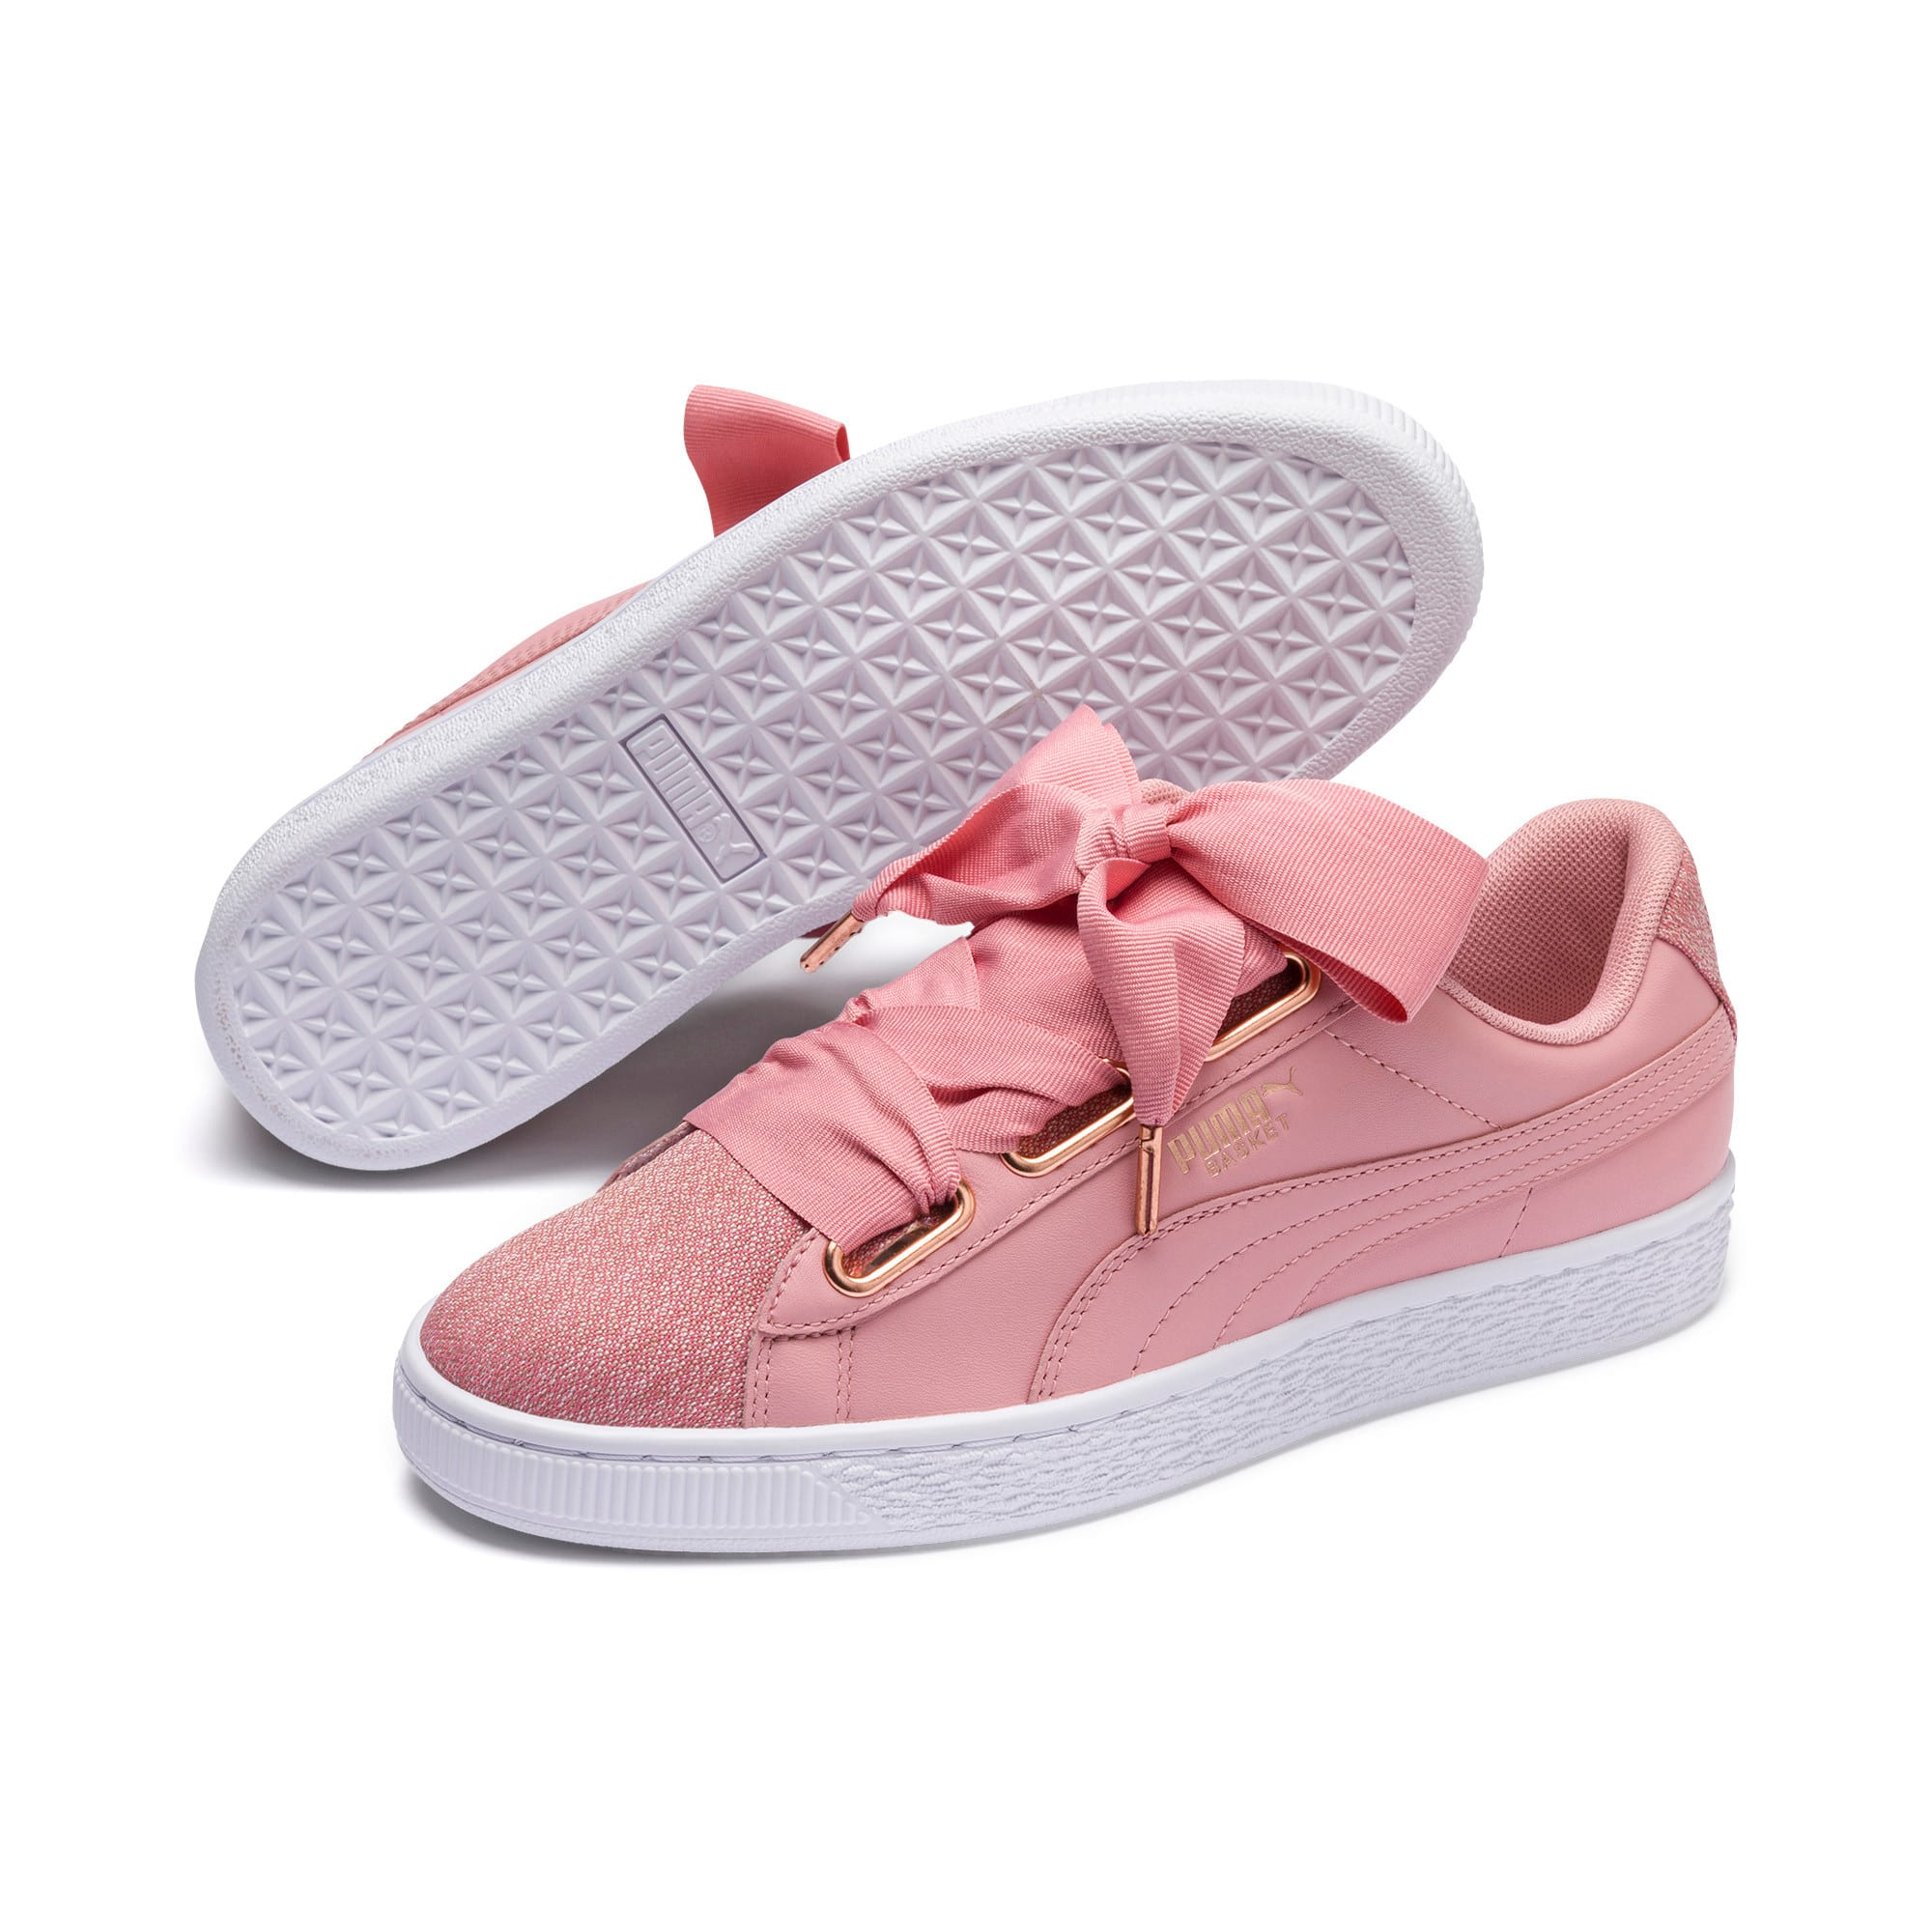 Basket Heart Woven Rose Women's Sneakers, Bridal Rose-Puma White, large